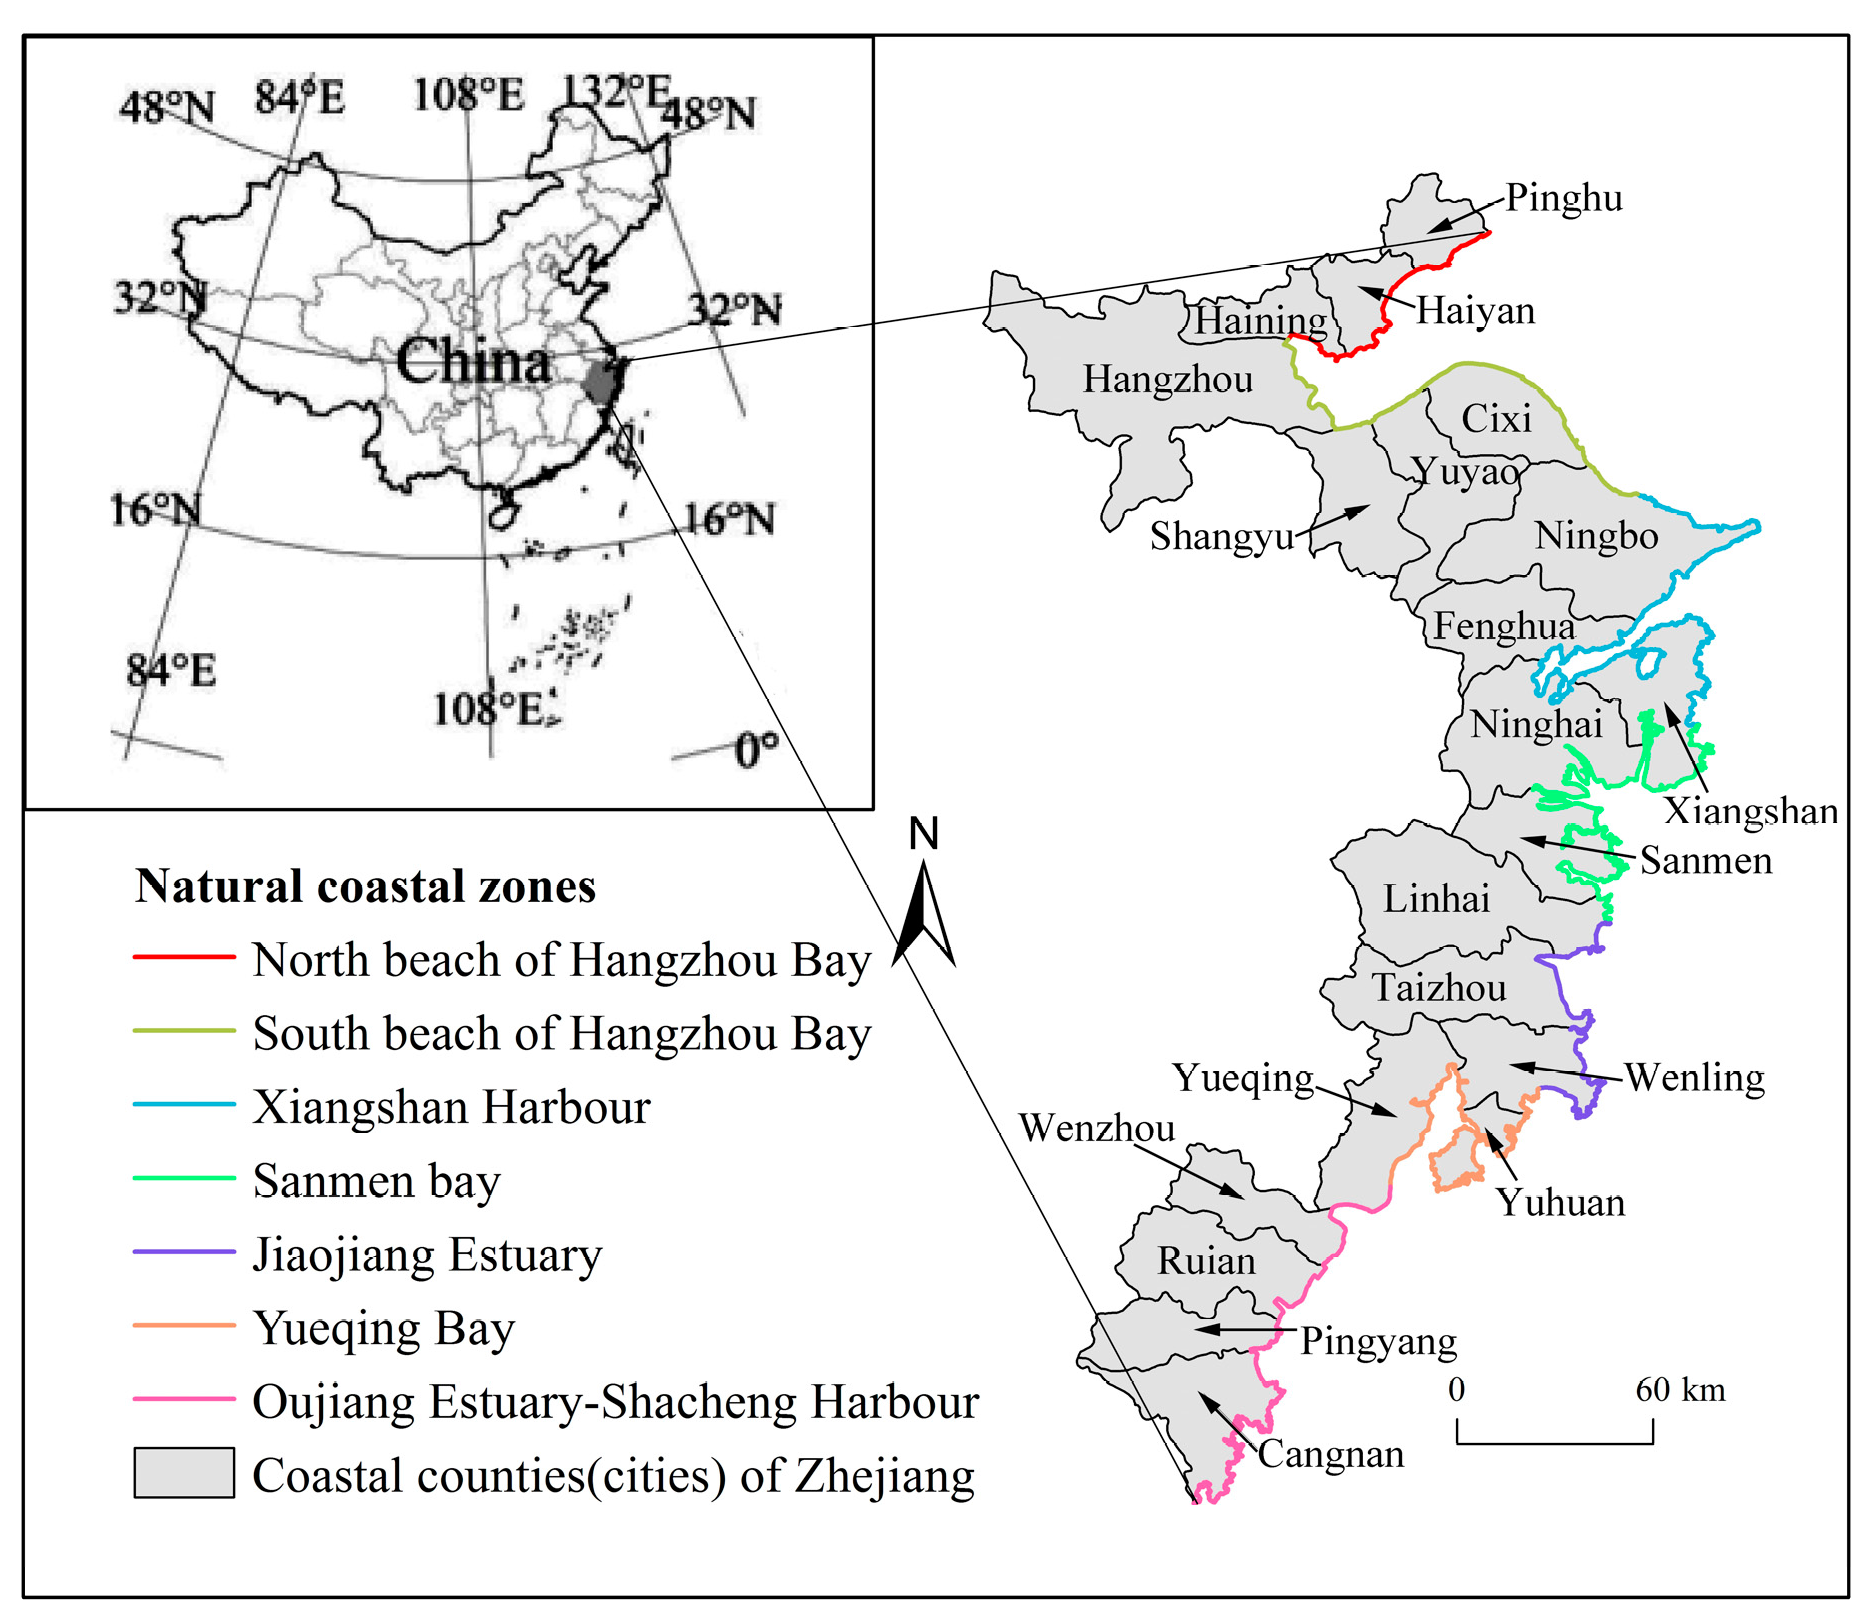 Sustainability Free FullText Spatiotemporal Change Patterns - Fenghua map